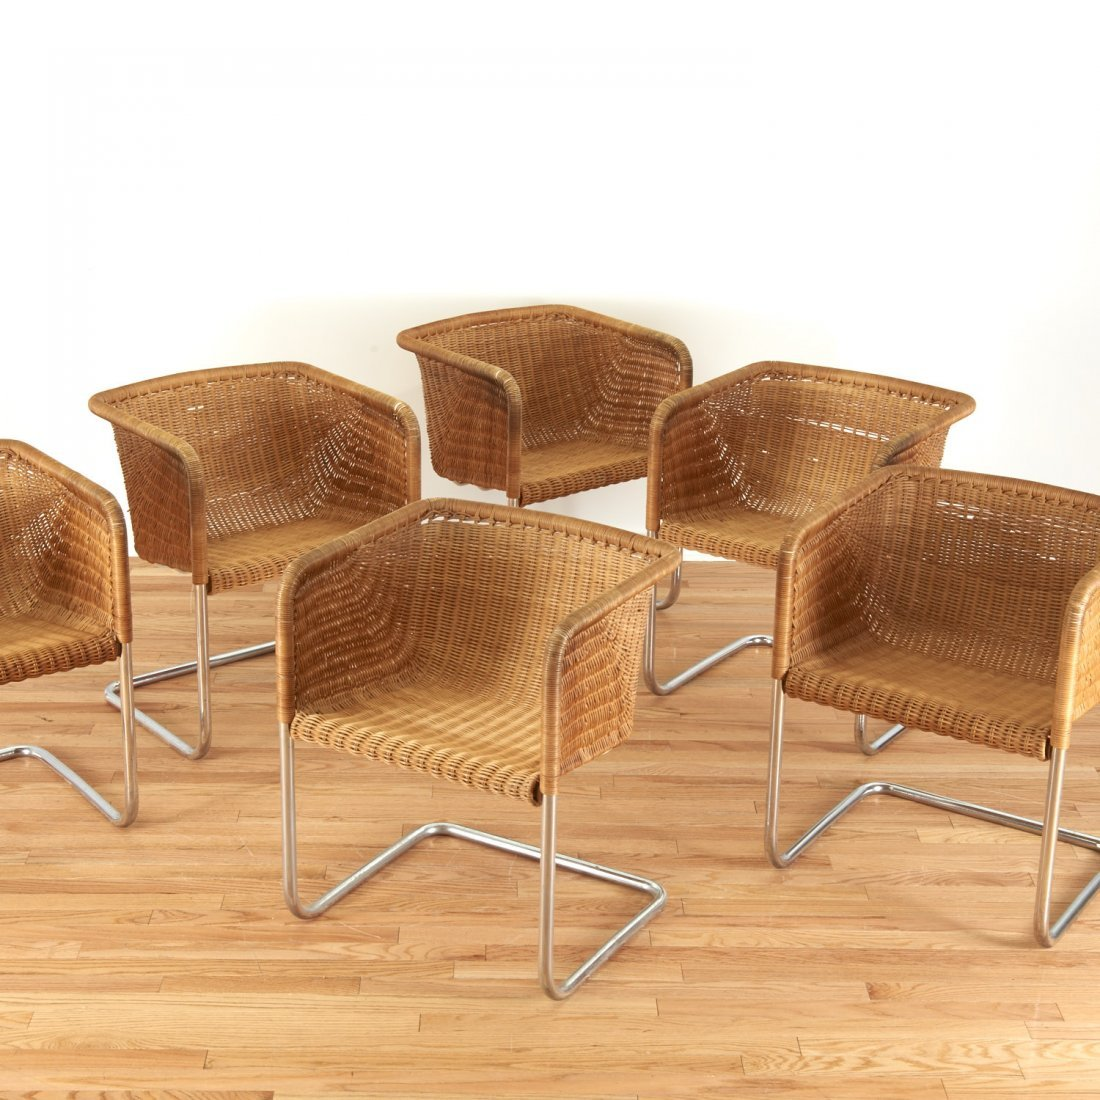 Set (6) wicker and chrome chairs by Harvey Probber